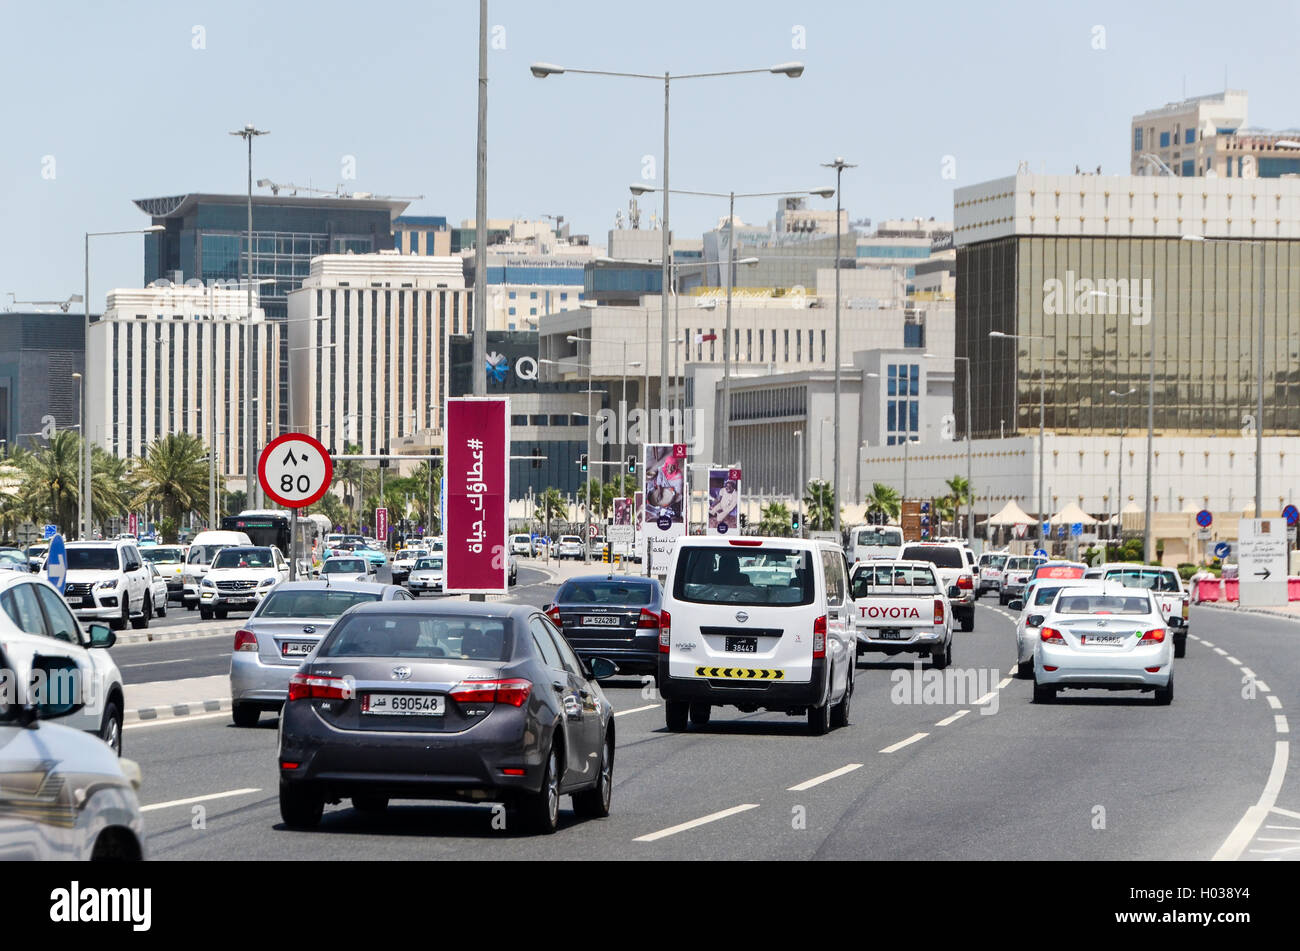 Traffic on the highways of Doha, Qatar - Stock Image